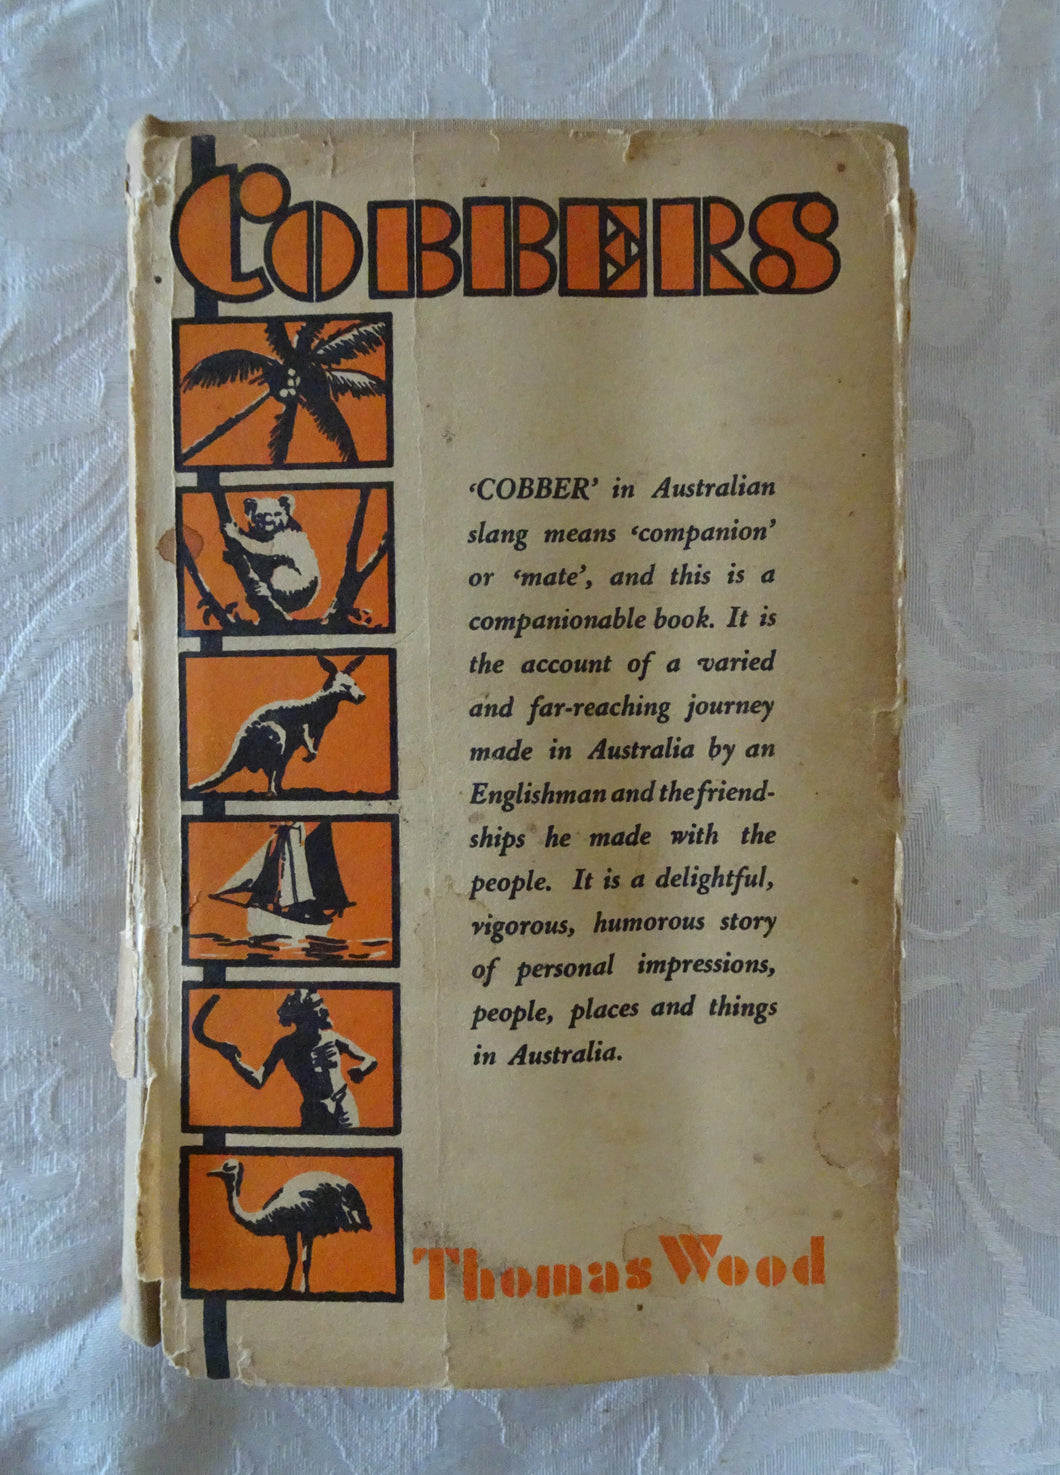 Cobbers by Thomas Wood